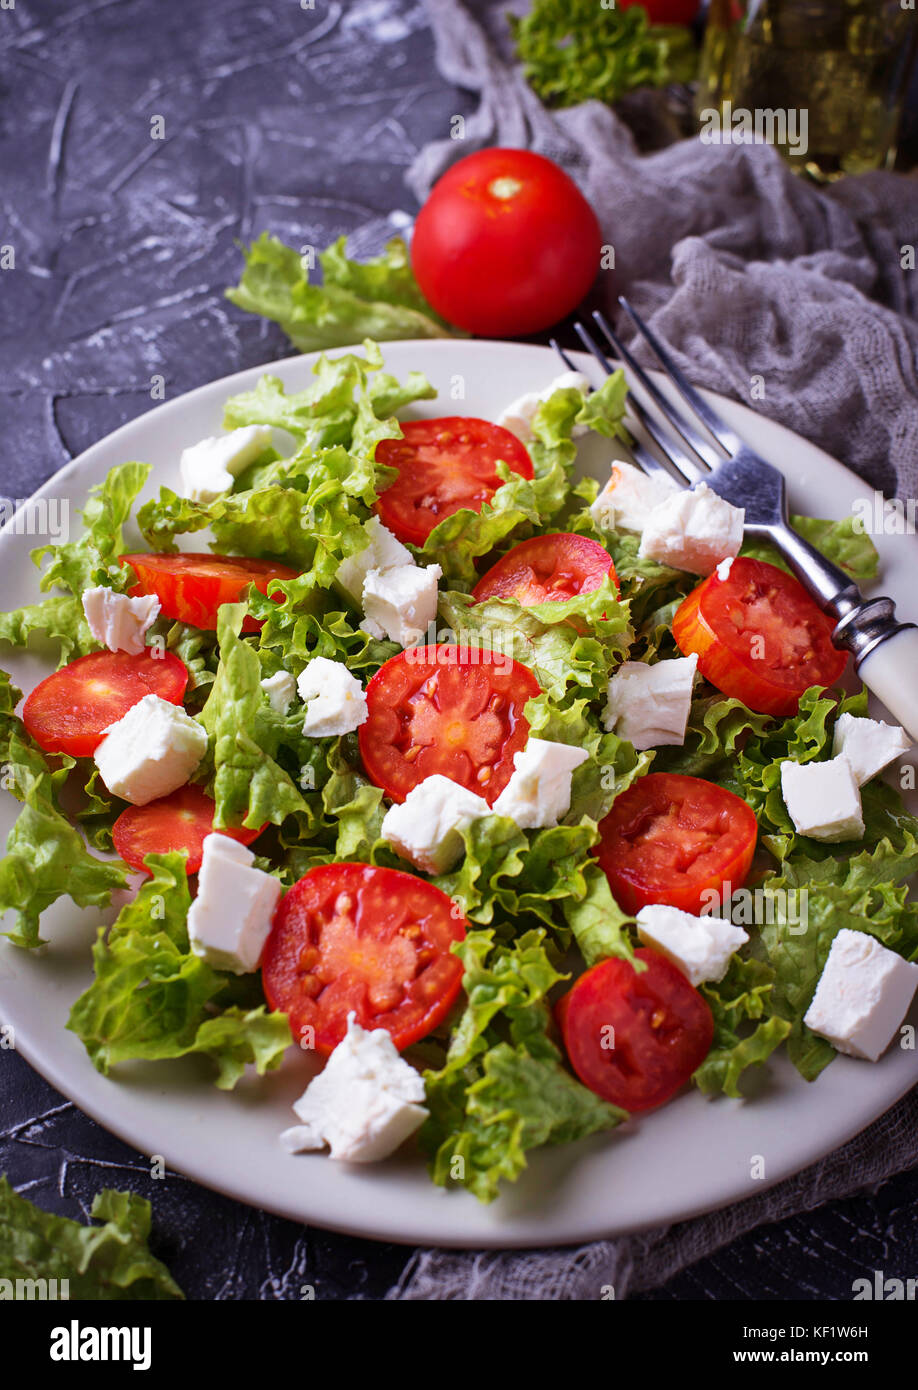 Healthy salad with tomato and feta cheese - Stock Image